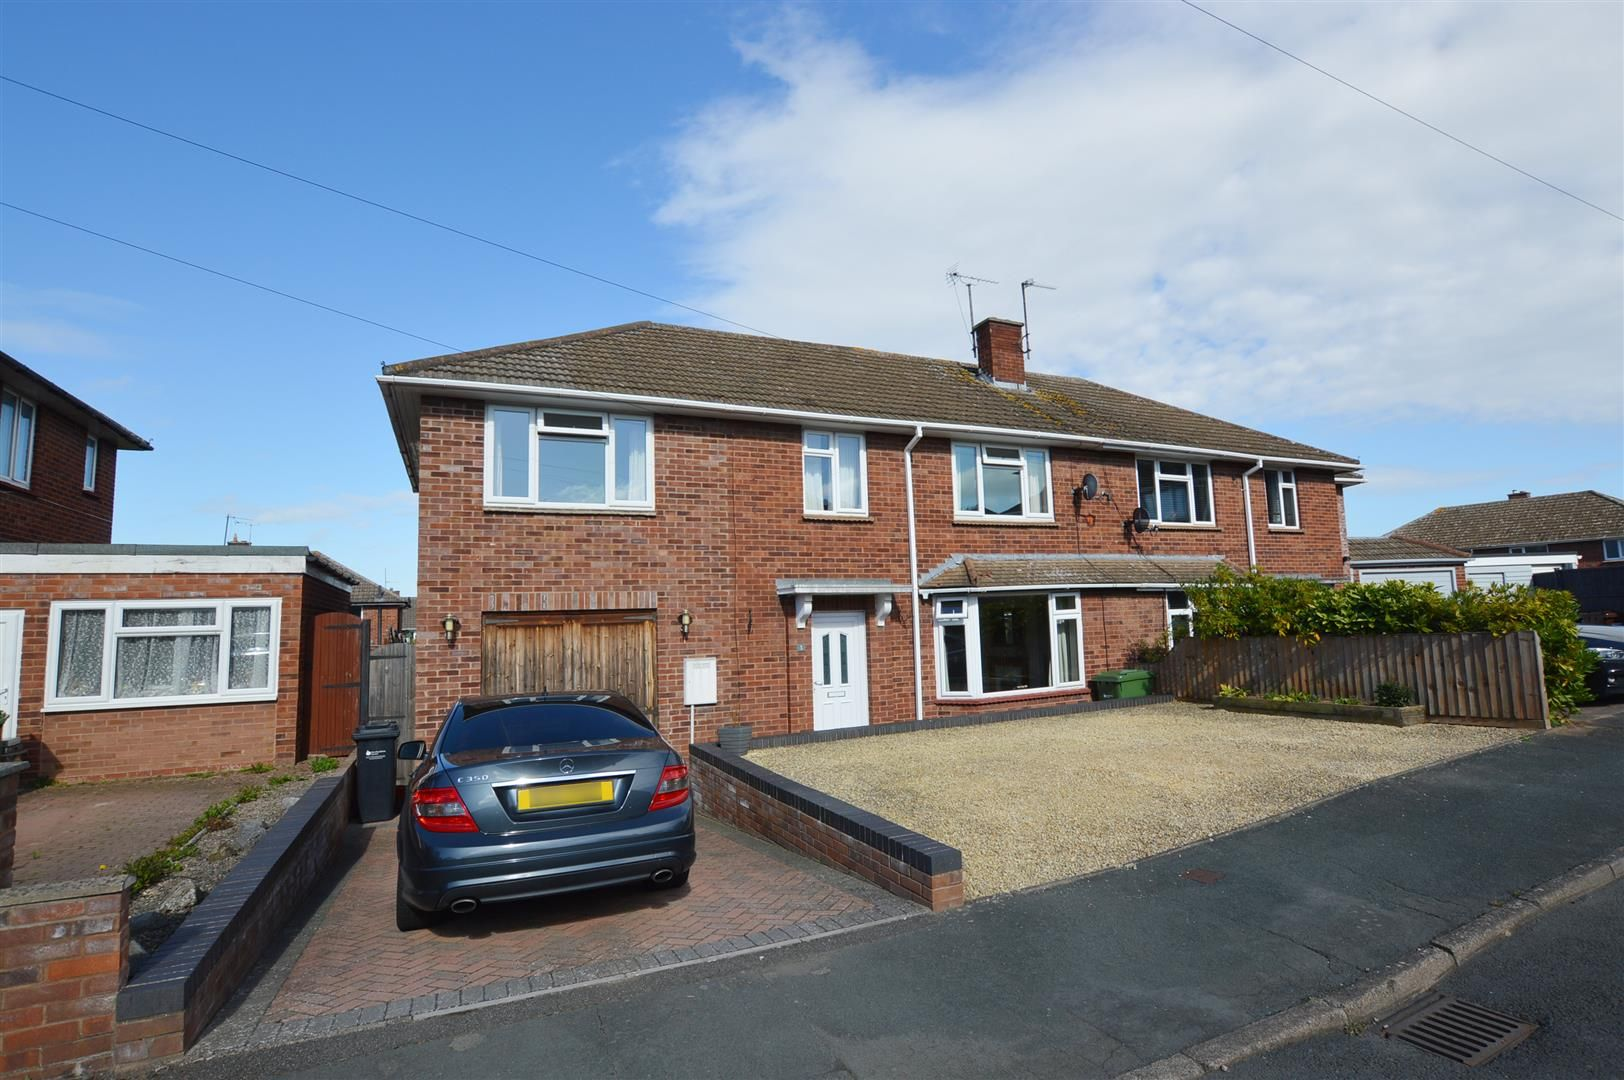 4 bed semi-detached for sale in Hereford 1